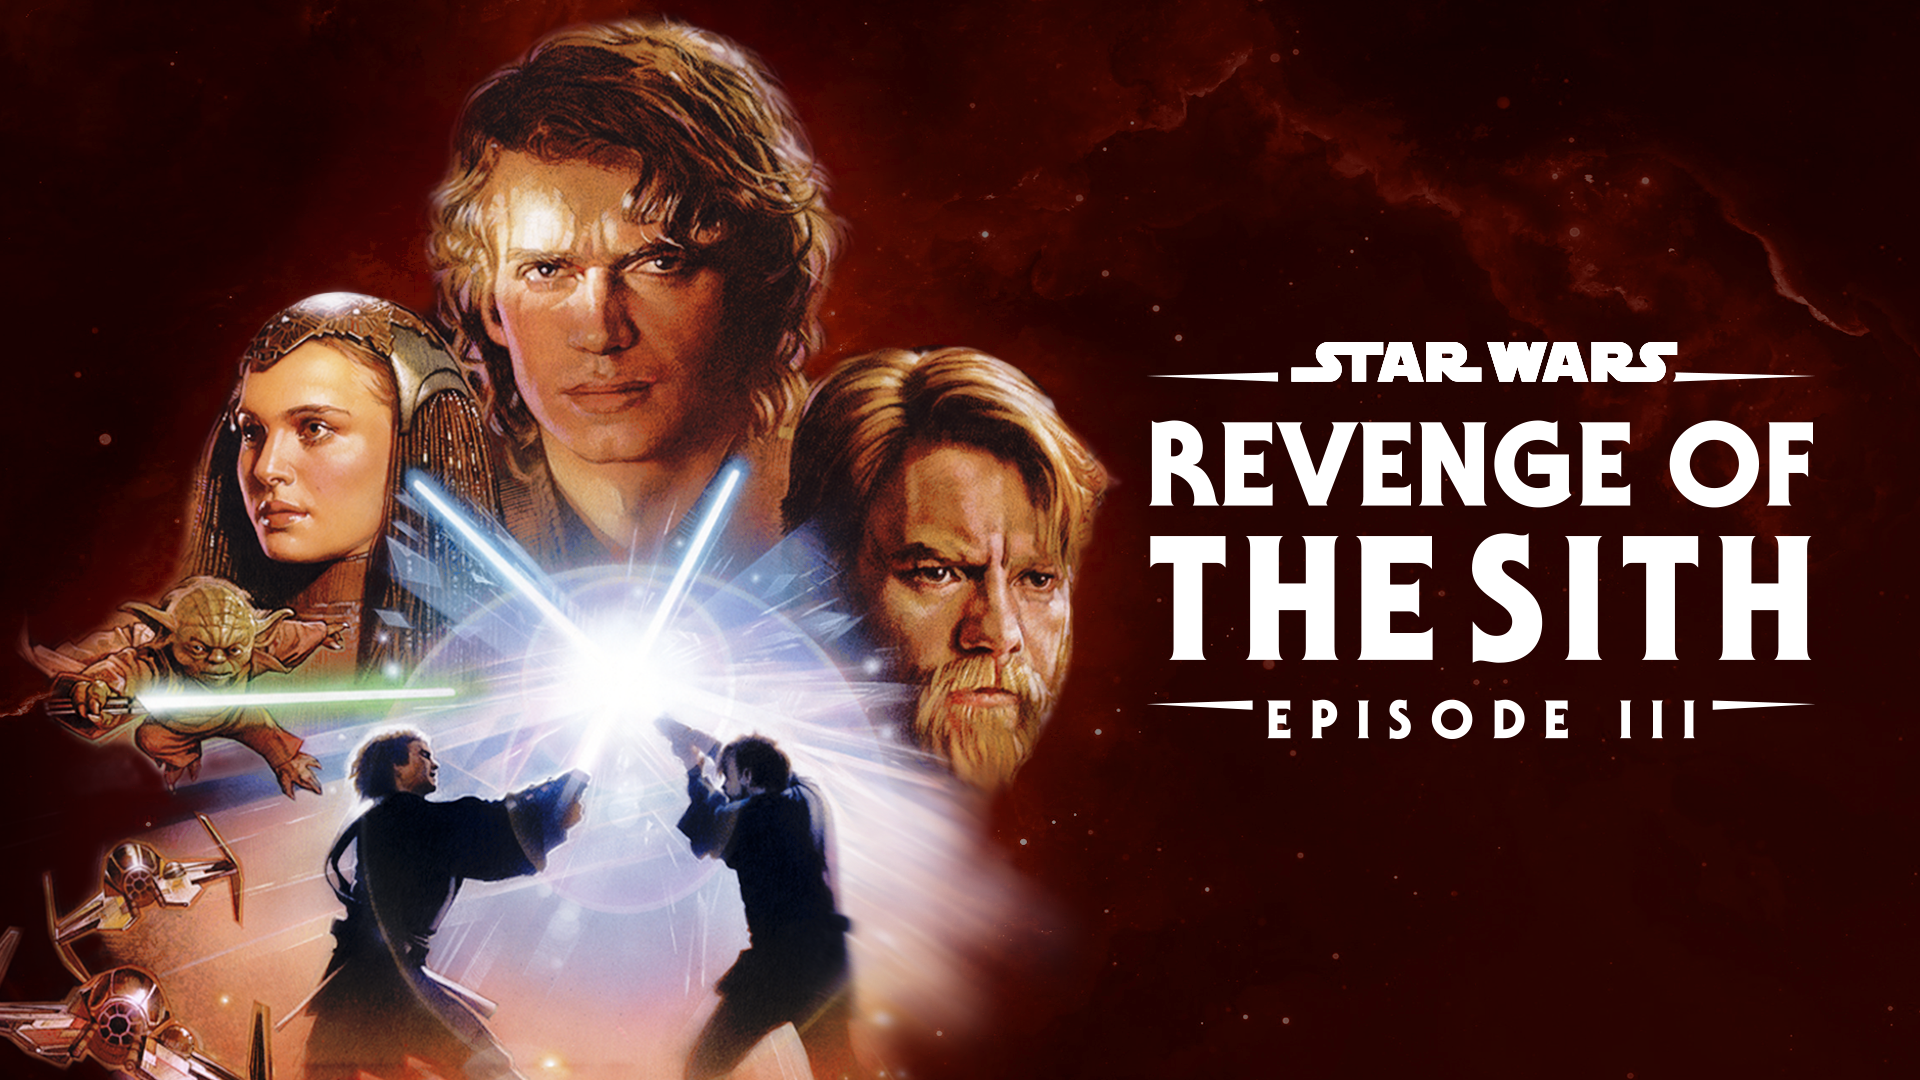 Watch Star Wars Revenge Of The Sith Episode Iii Disney